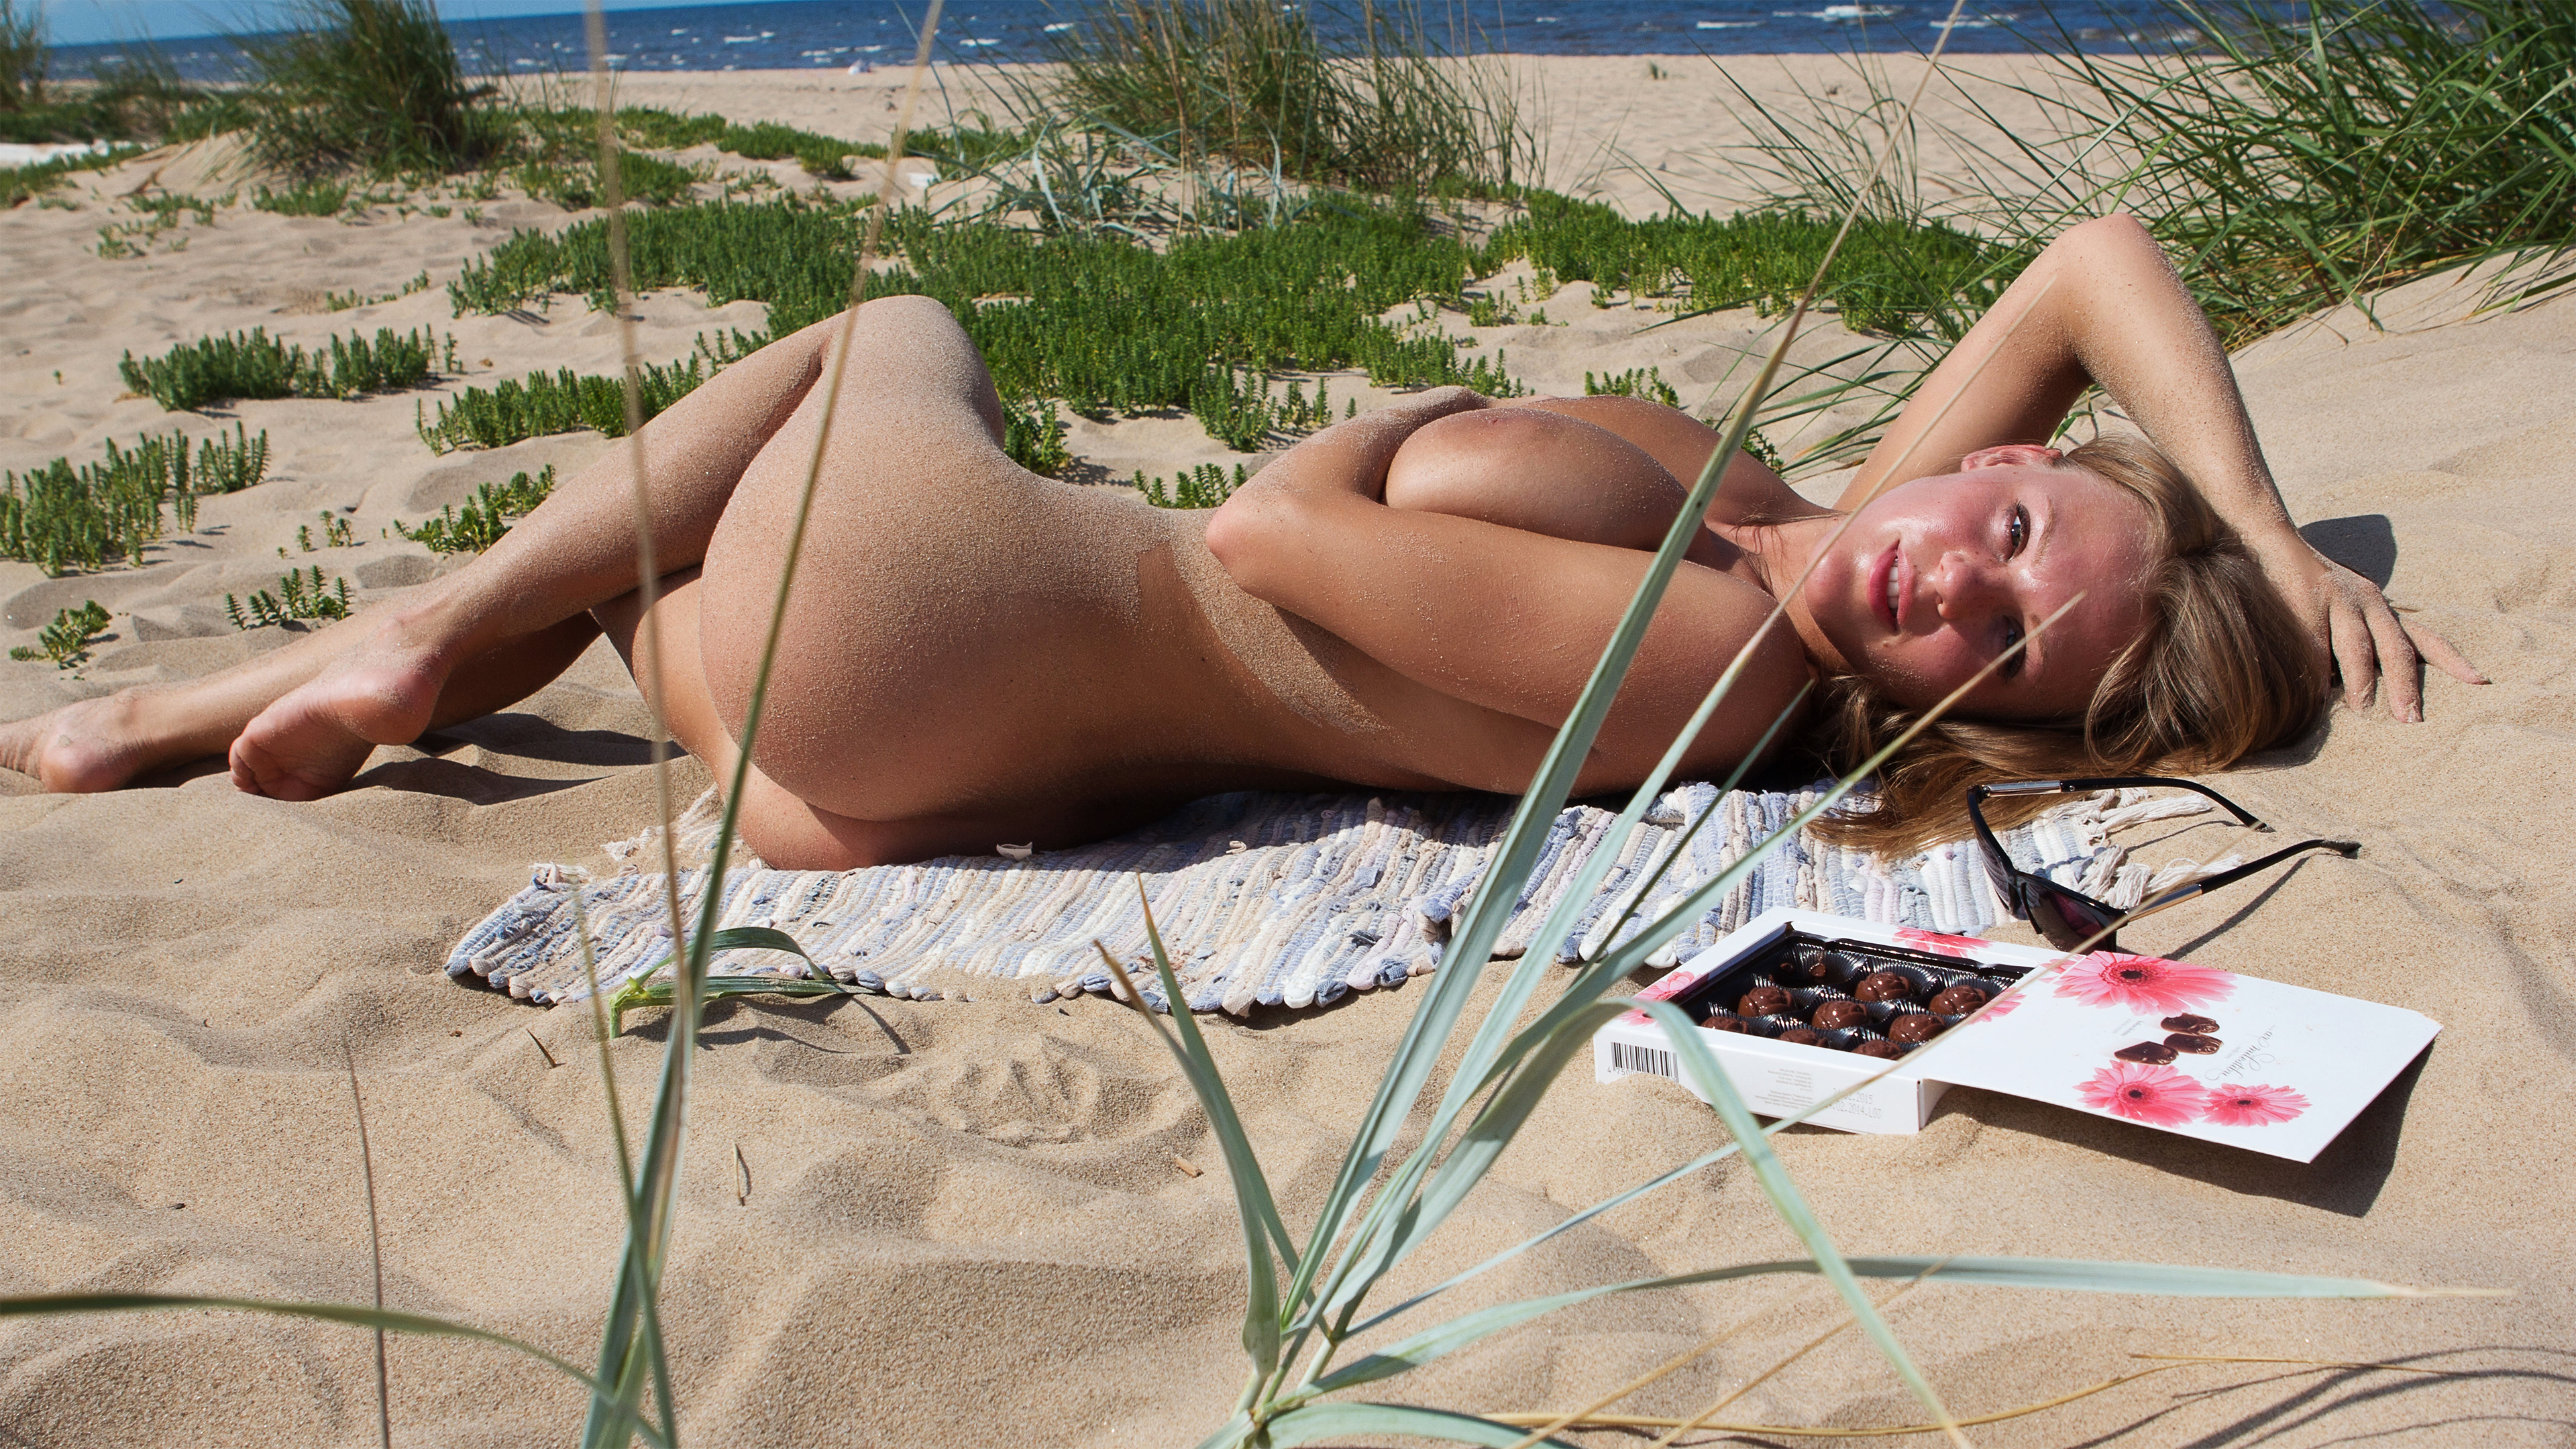 Blonde viola bailey nude on the wet sand